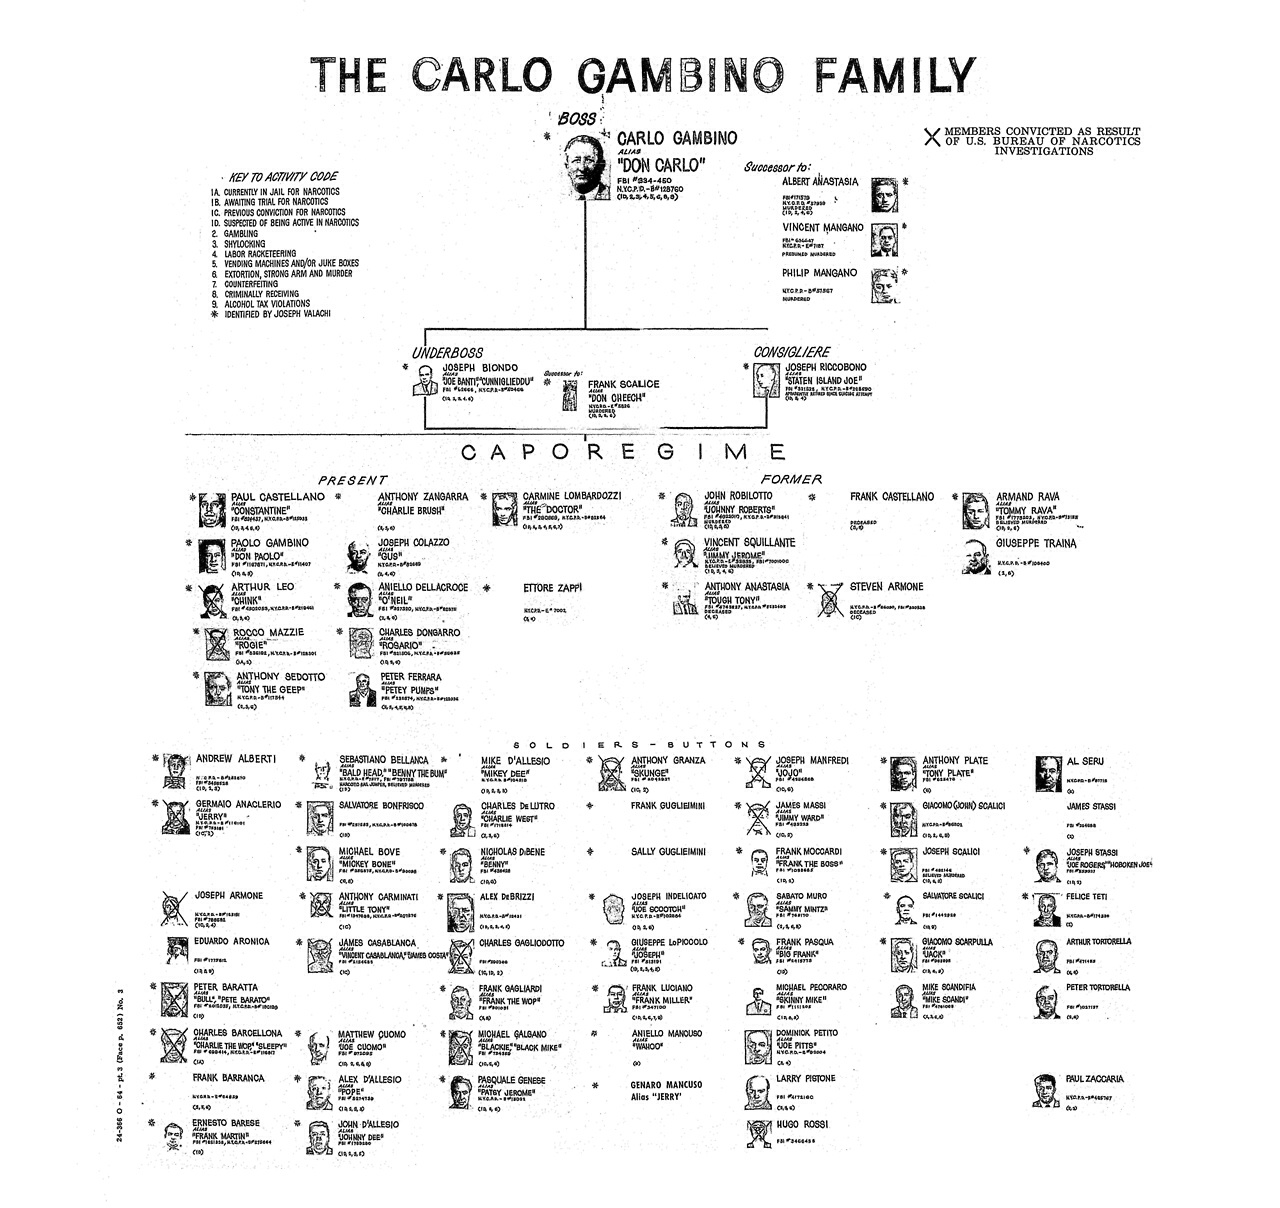 the gambino crime family Page 1 of 14 - the gambino crime family - posted in crews: the gambino crime family was started by a man named carlo he was an immigrant of sicily who originally formed la cosa nostra in italy to protect farmers, but realized how much money he could make in america.